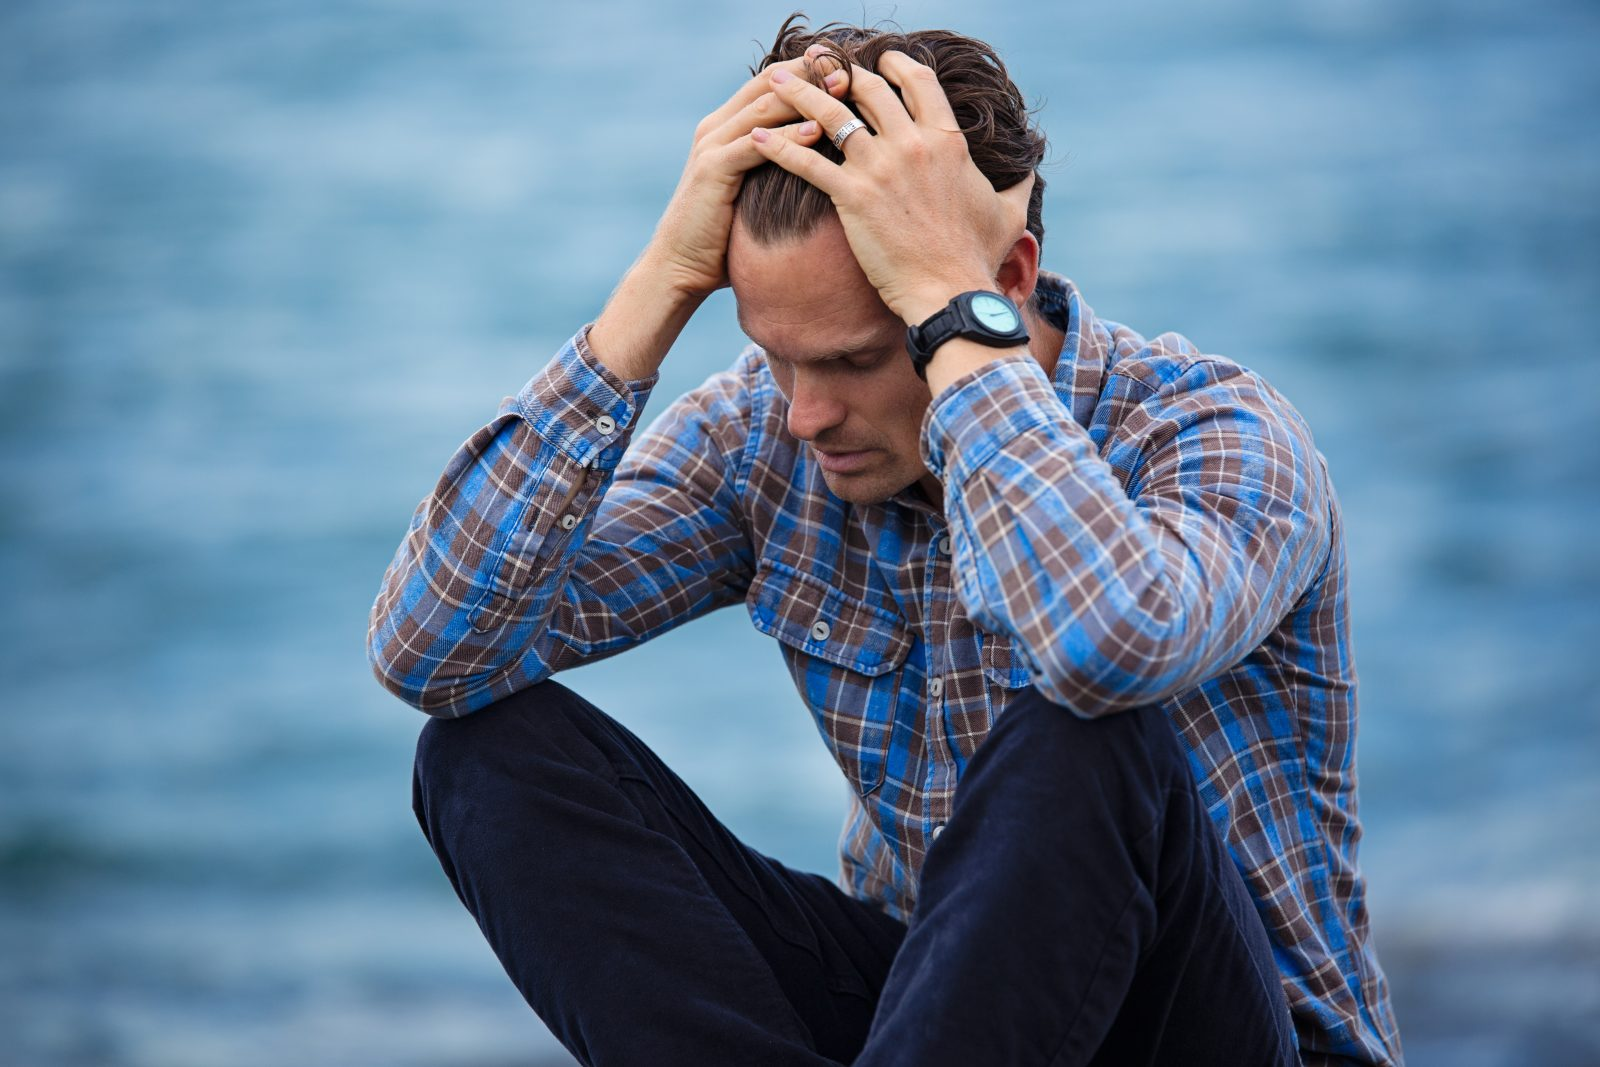 Man sitting cross legged, stressed out with hands running through hair